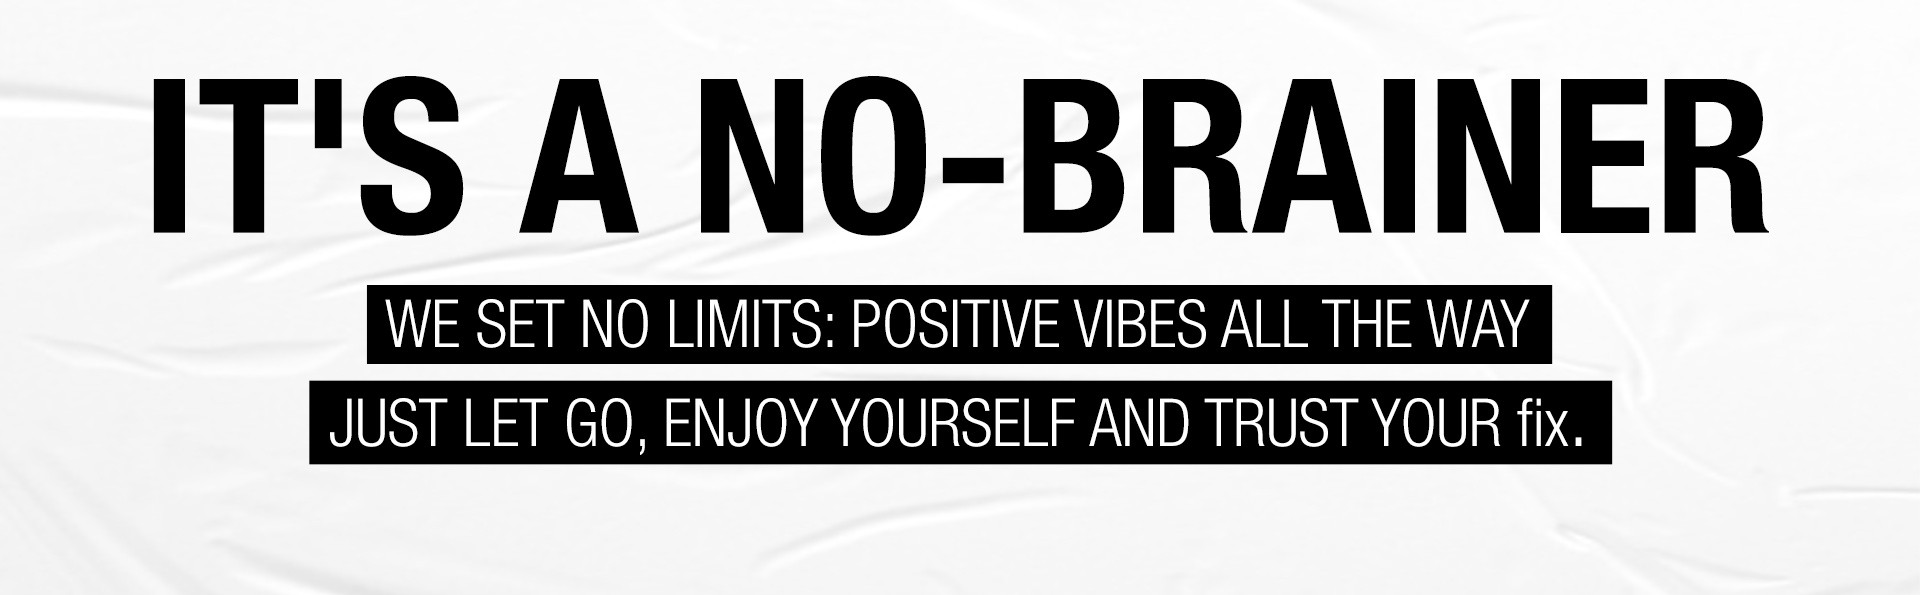 IT'S A NO-BRAINER WE SET NO LIMITS: POSITIVE VIBES ALL THE WAY JUST LET GO, ENJOY YOURSELF AND TRUST YOUR fix.